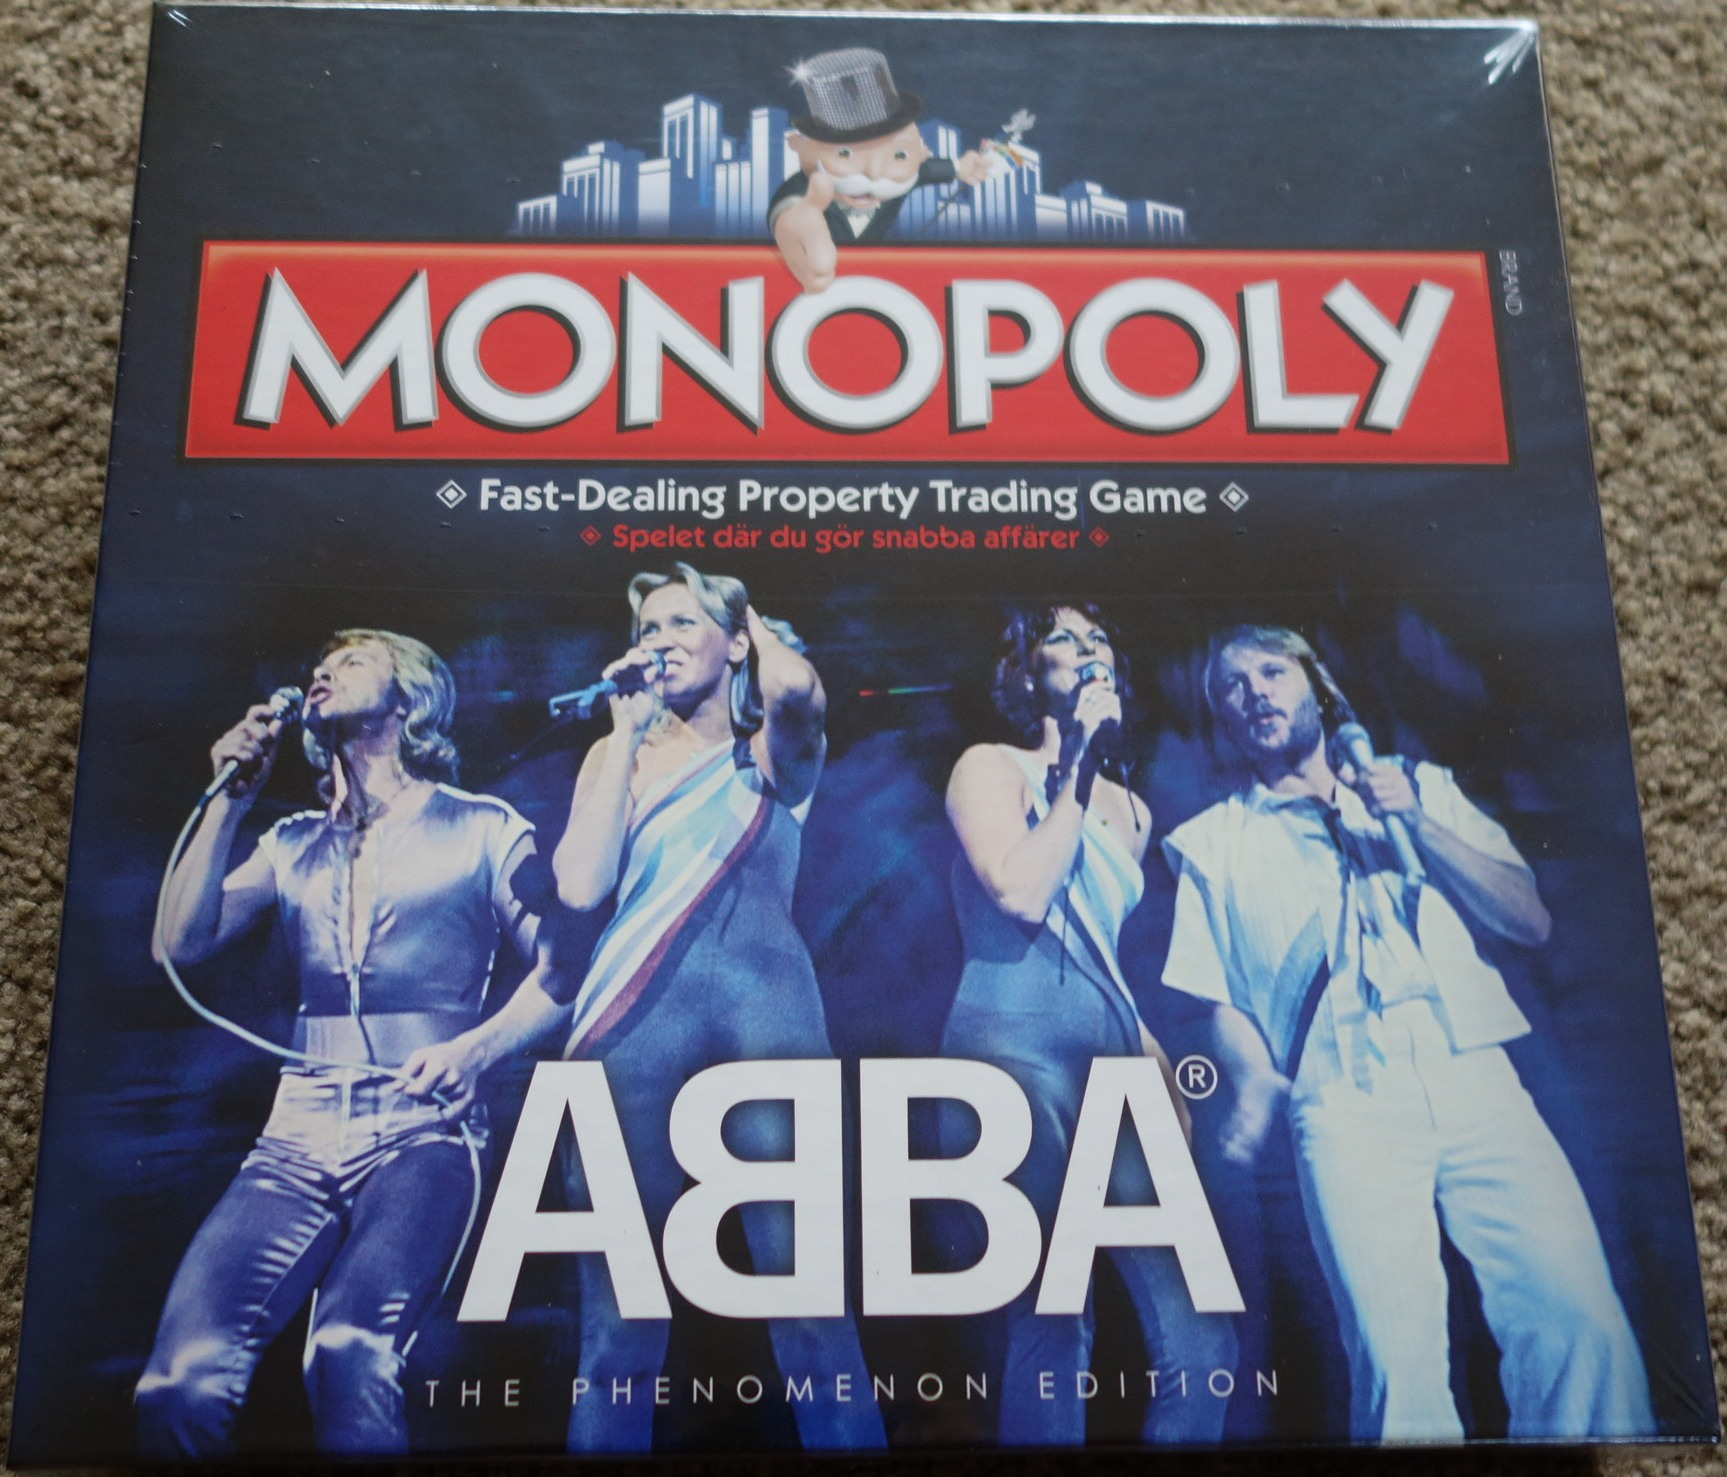 ABBA Monopoly - front.jpg